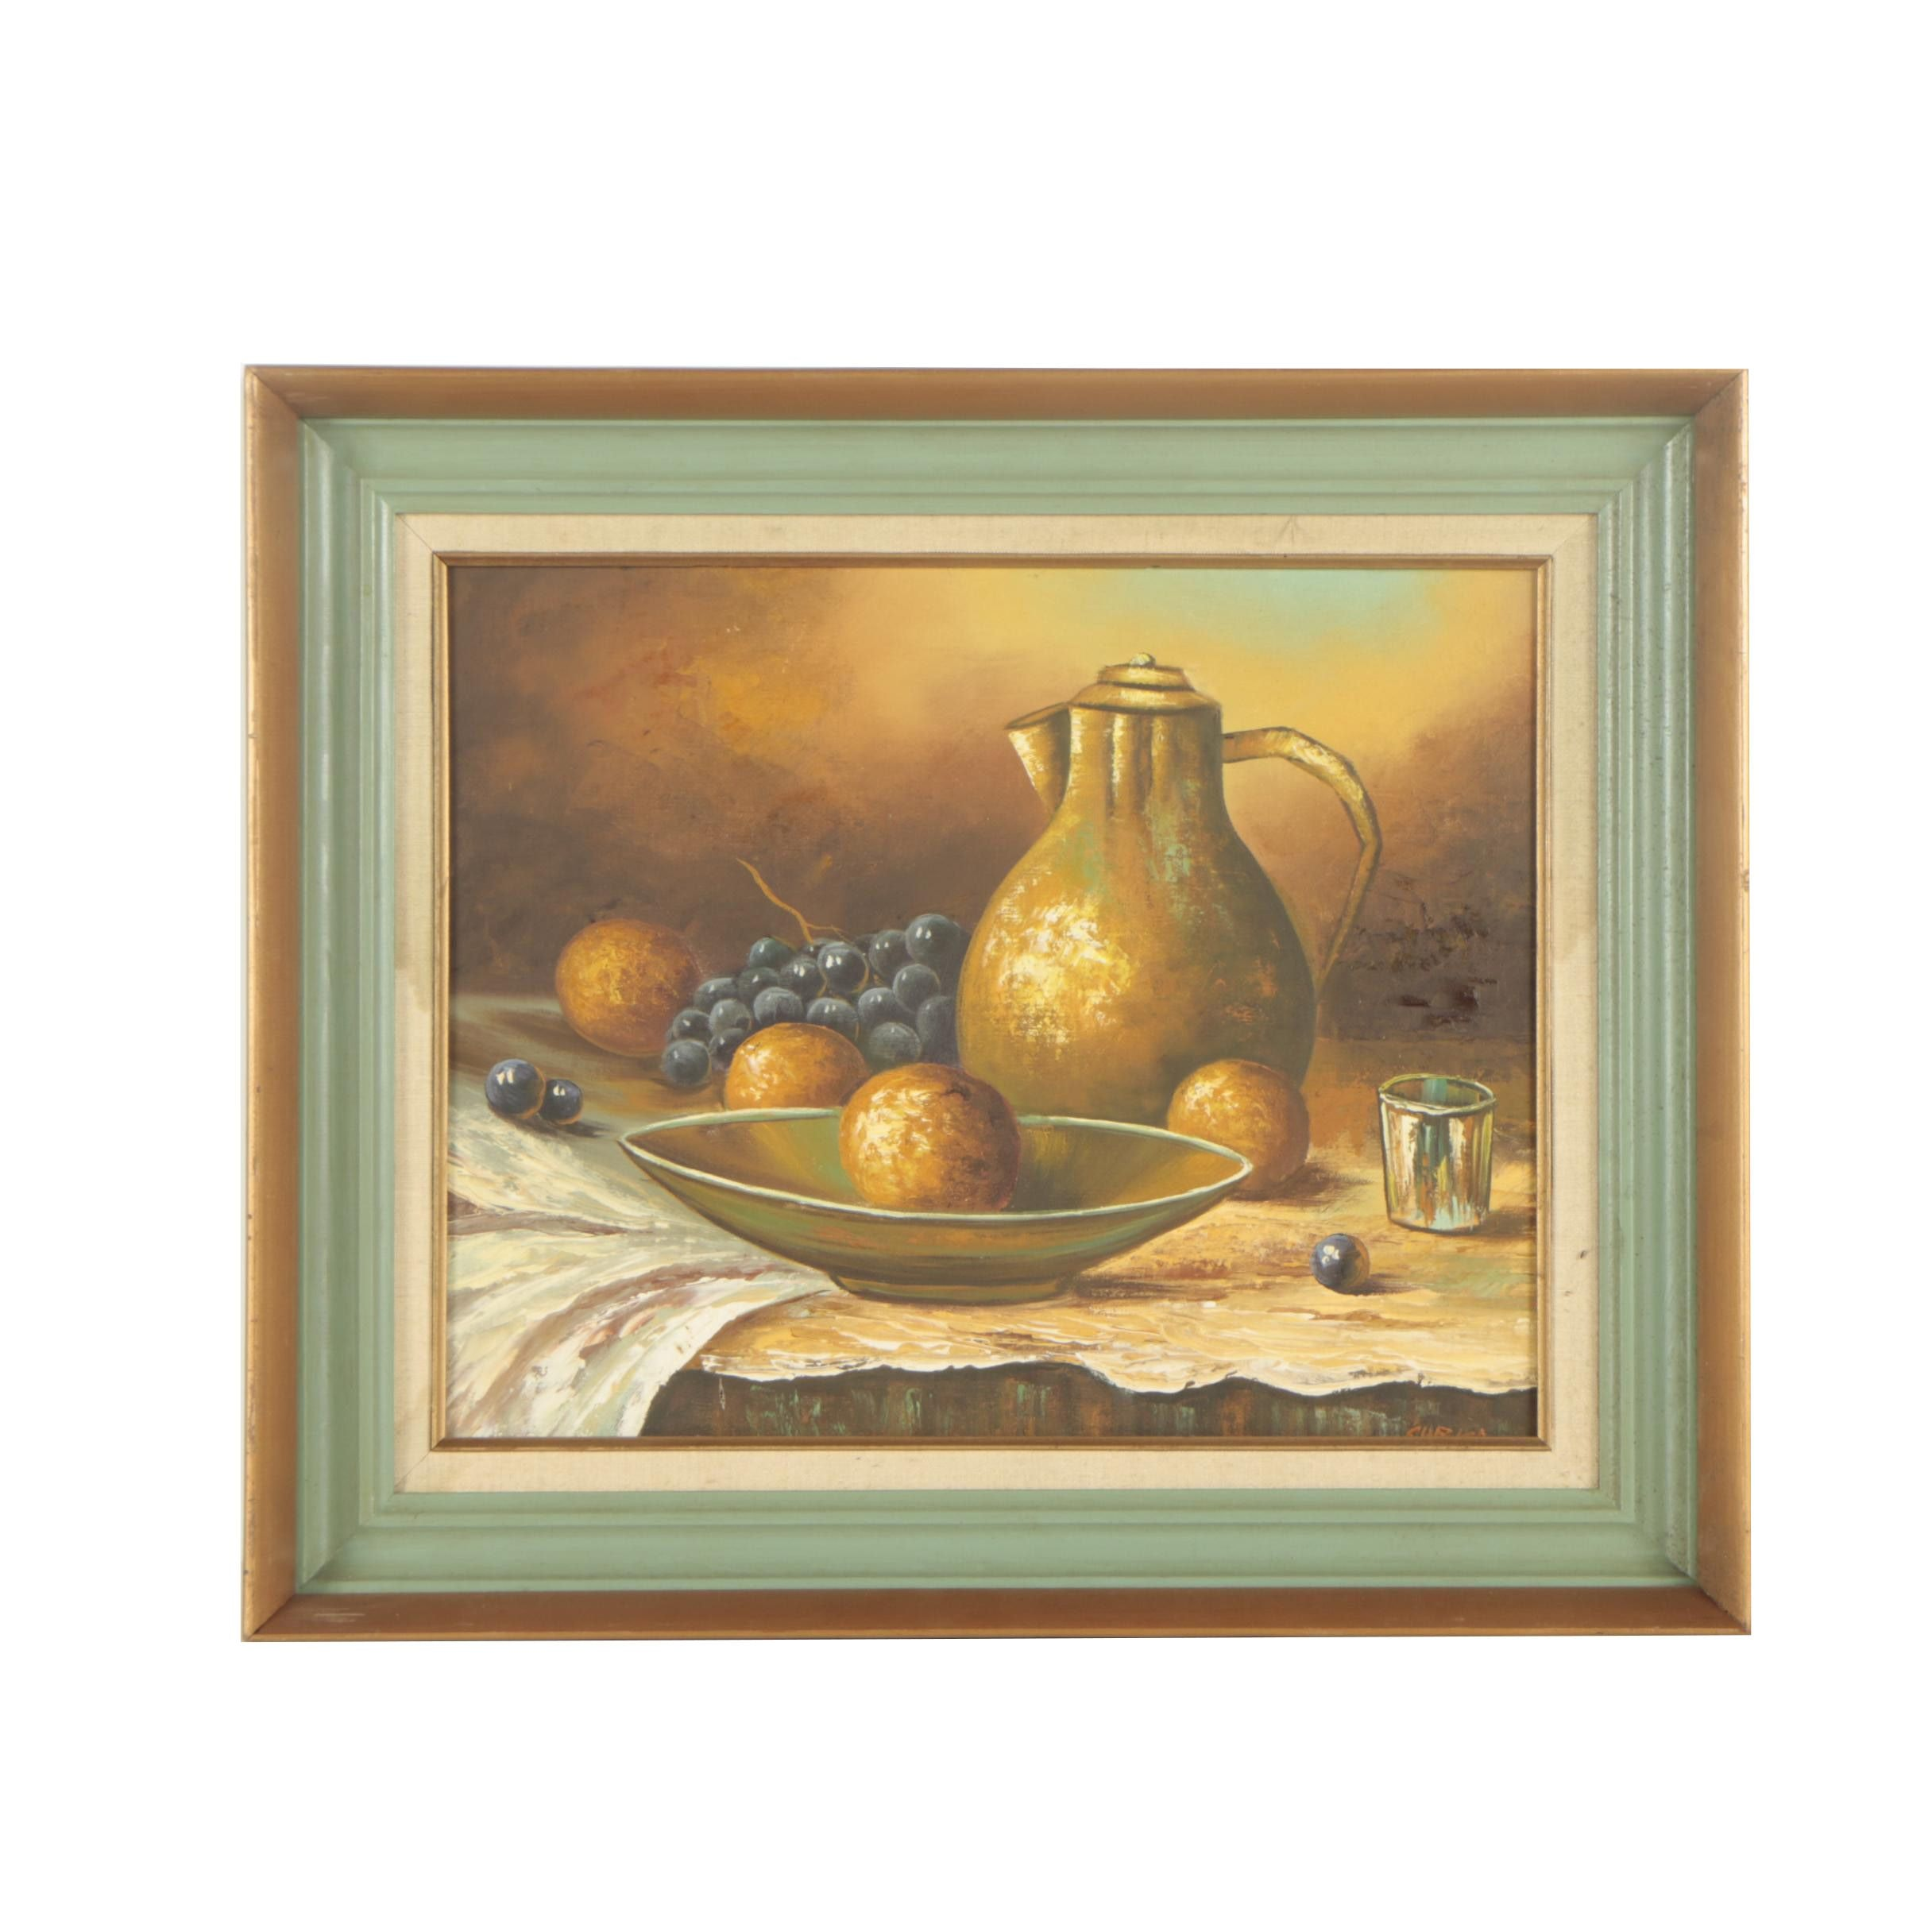 Curka Mid 20th Century Oil Painting of a Still Life